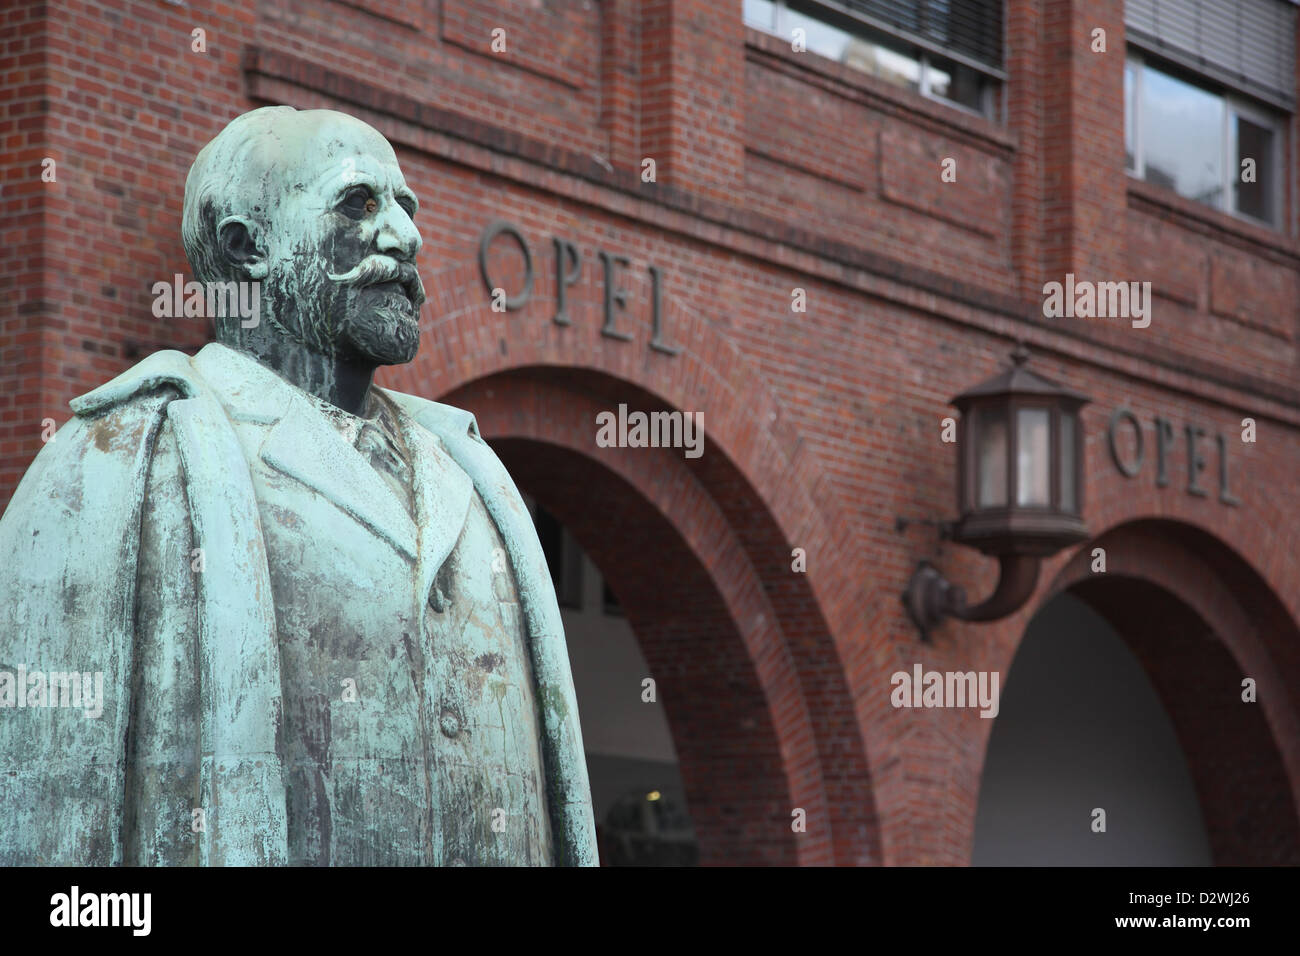 Russelsheim, Germany, Adam Opel statue outside the entrance - Stock Image